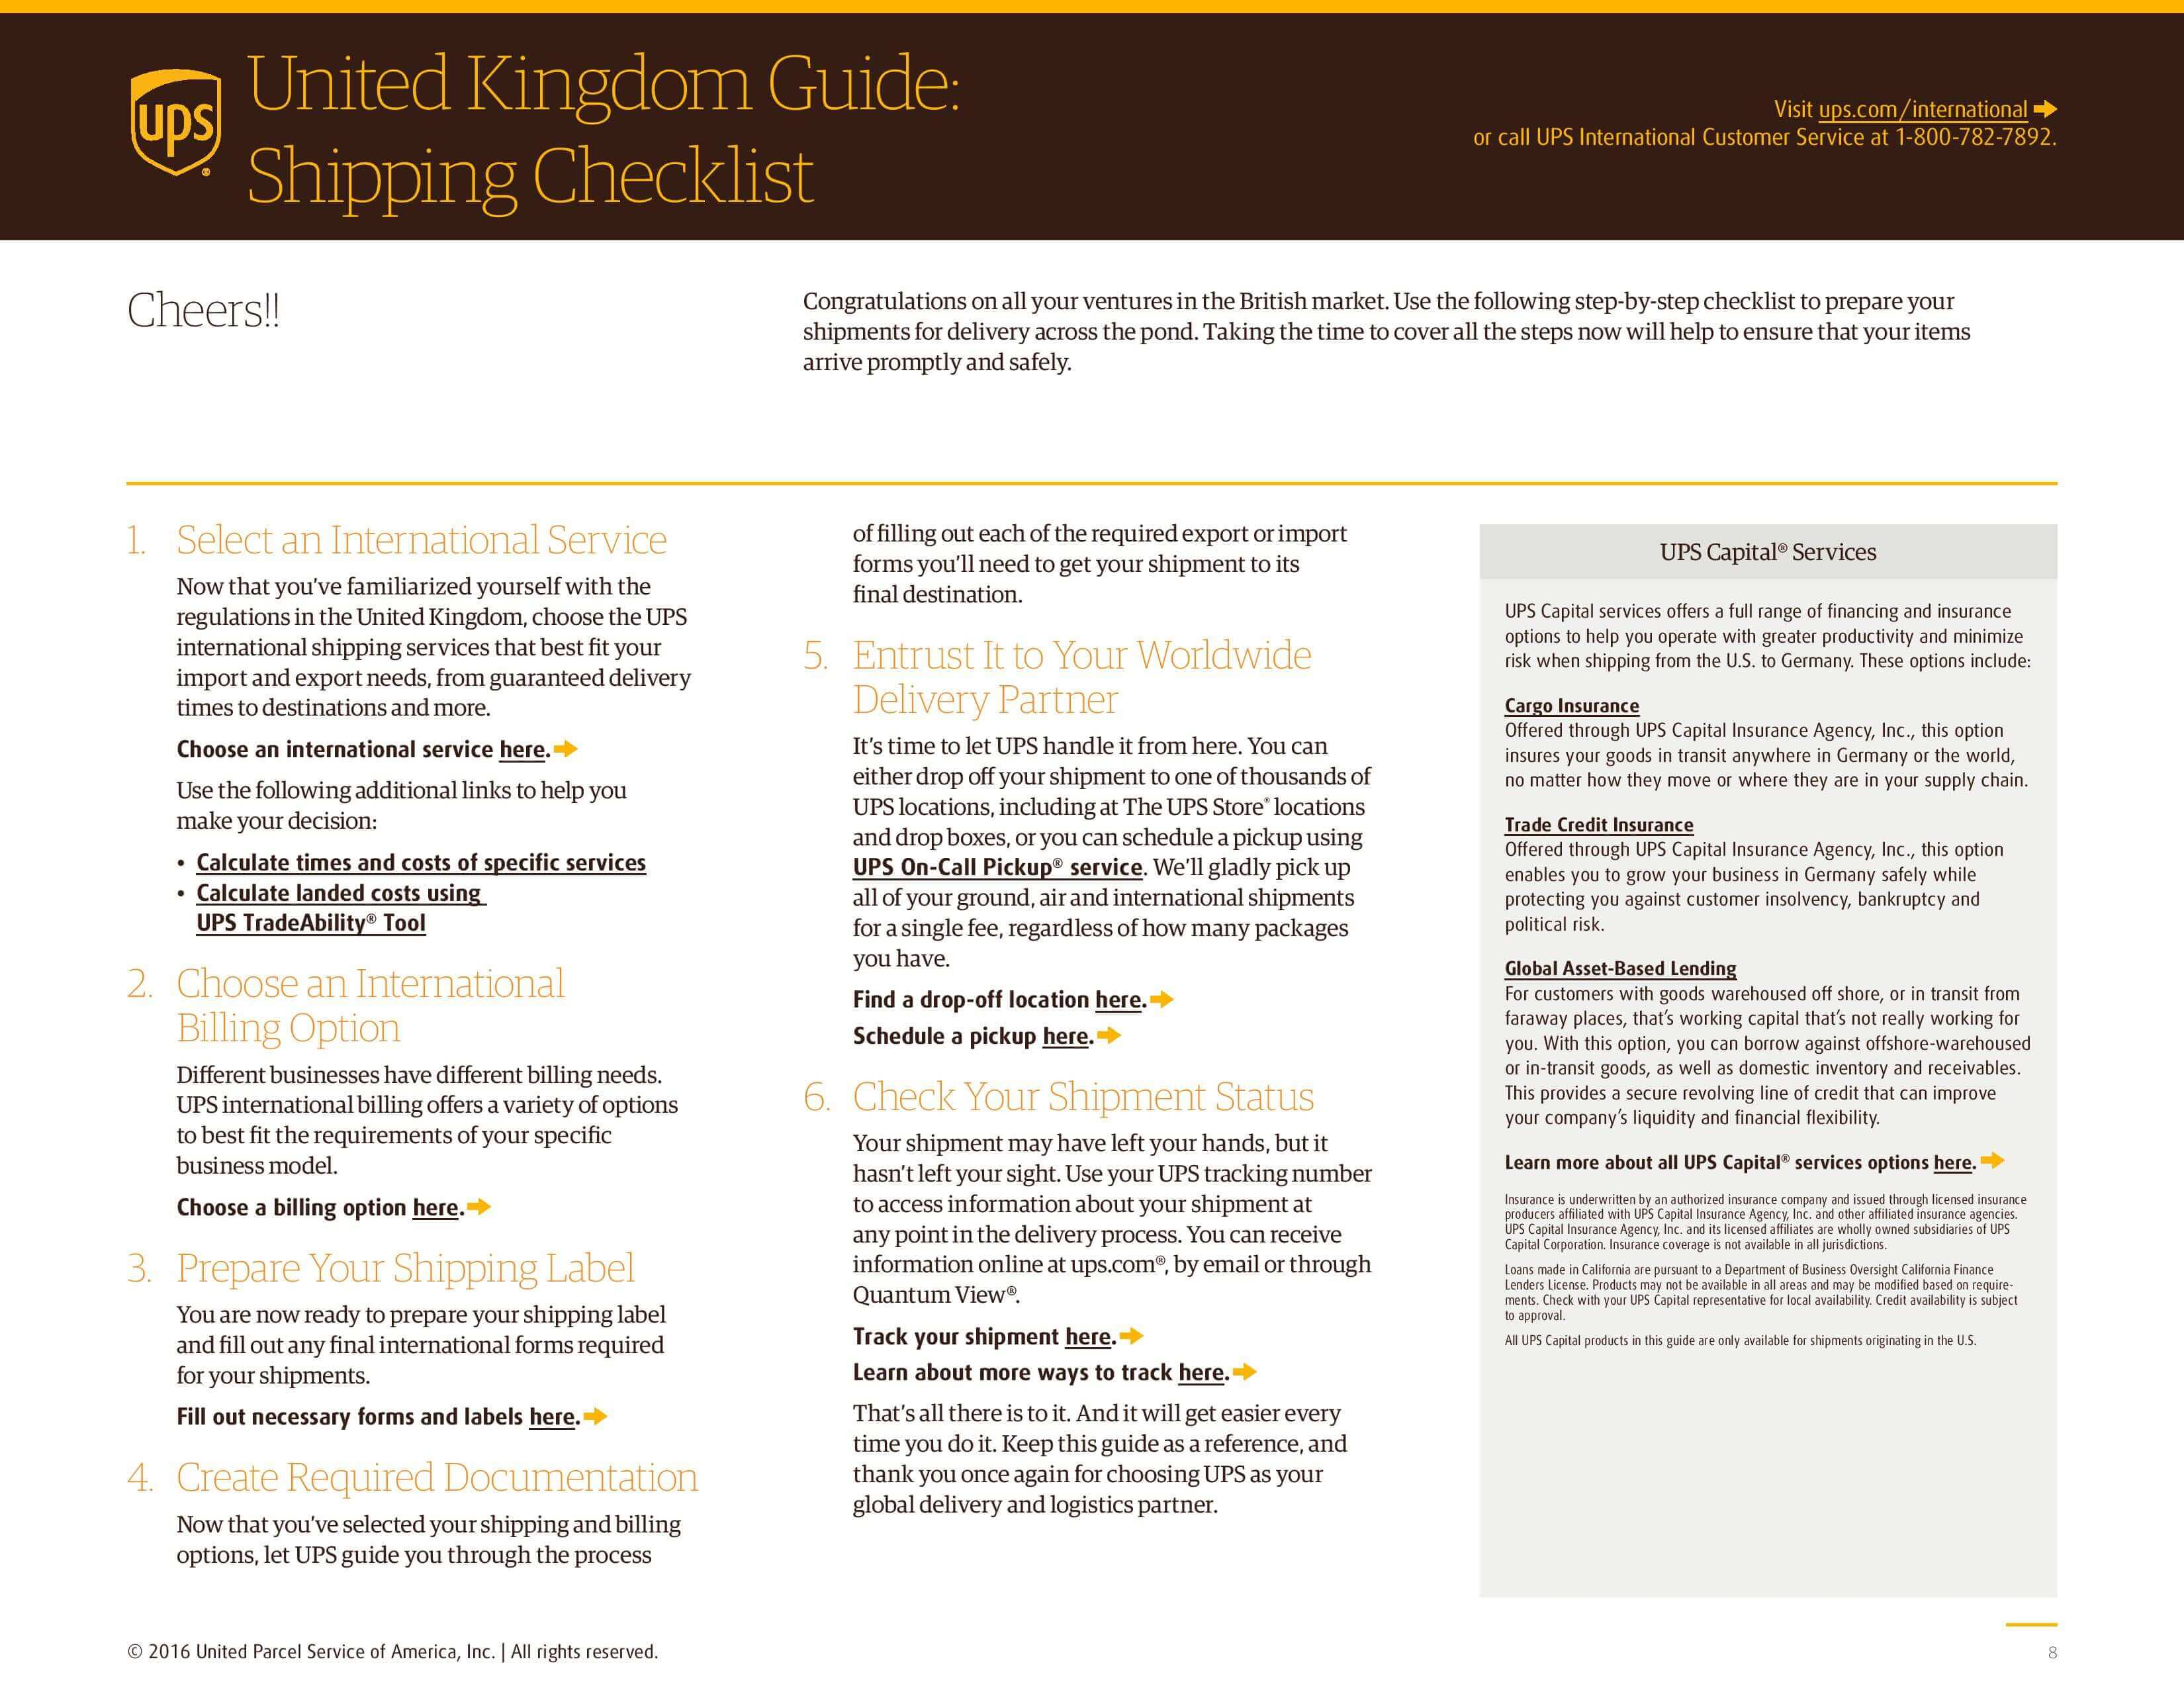 15up20068_uk guide_final_2016 2 page 008 1